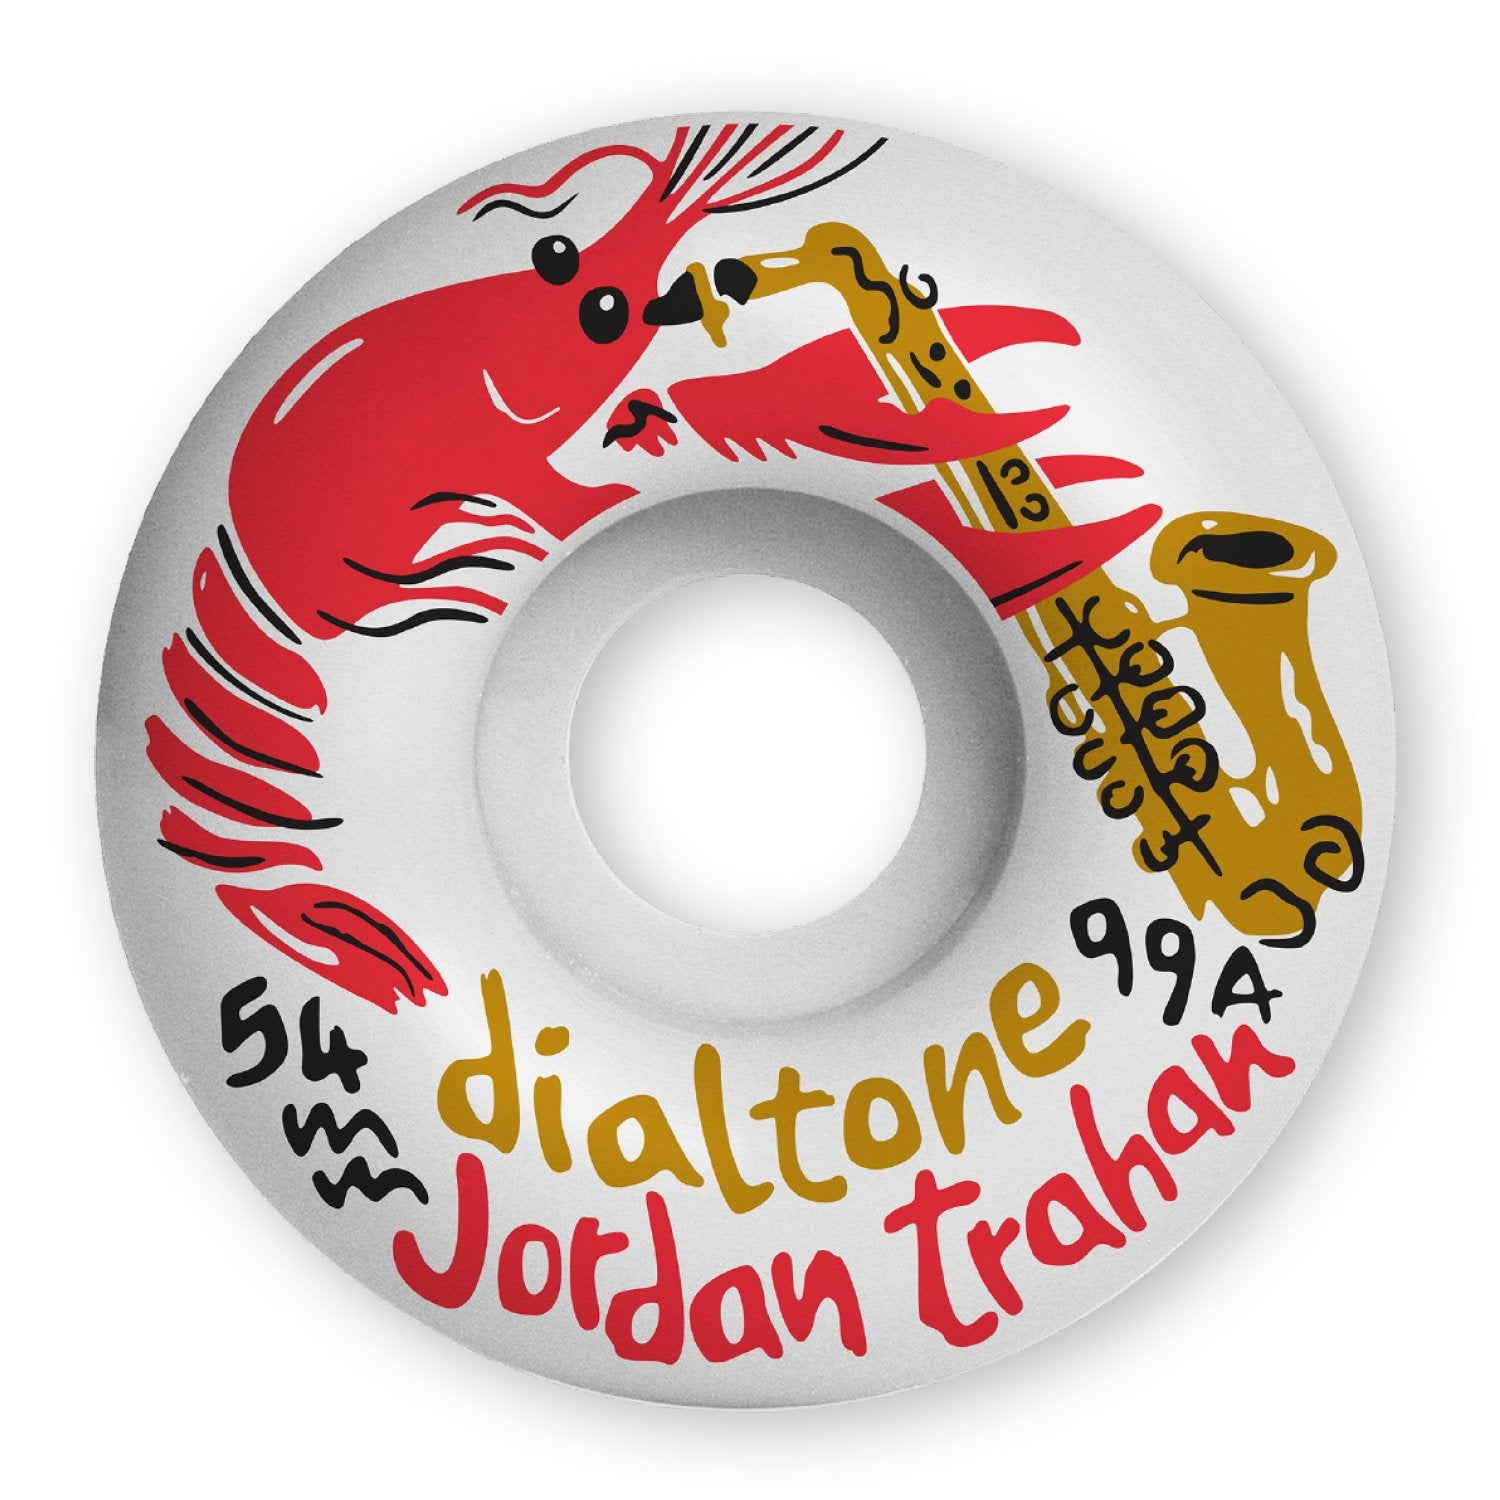 Dial Tone Wheels Trahan Zydeco Conical 99a 55mm